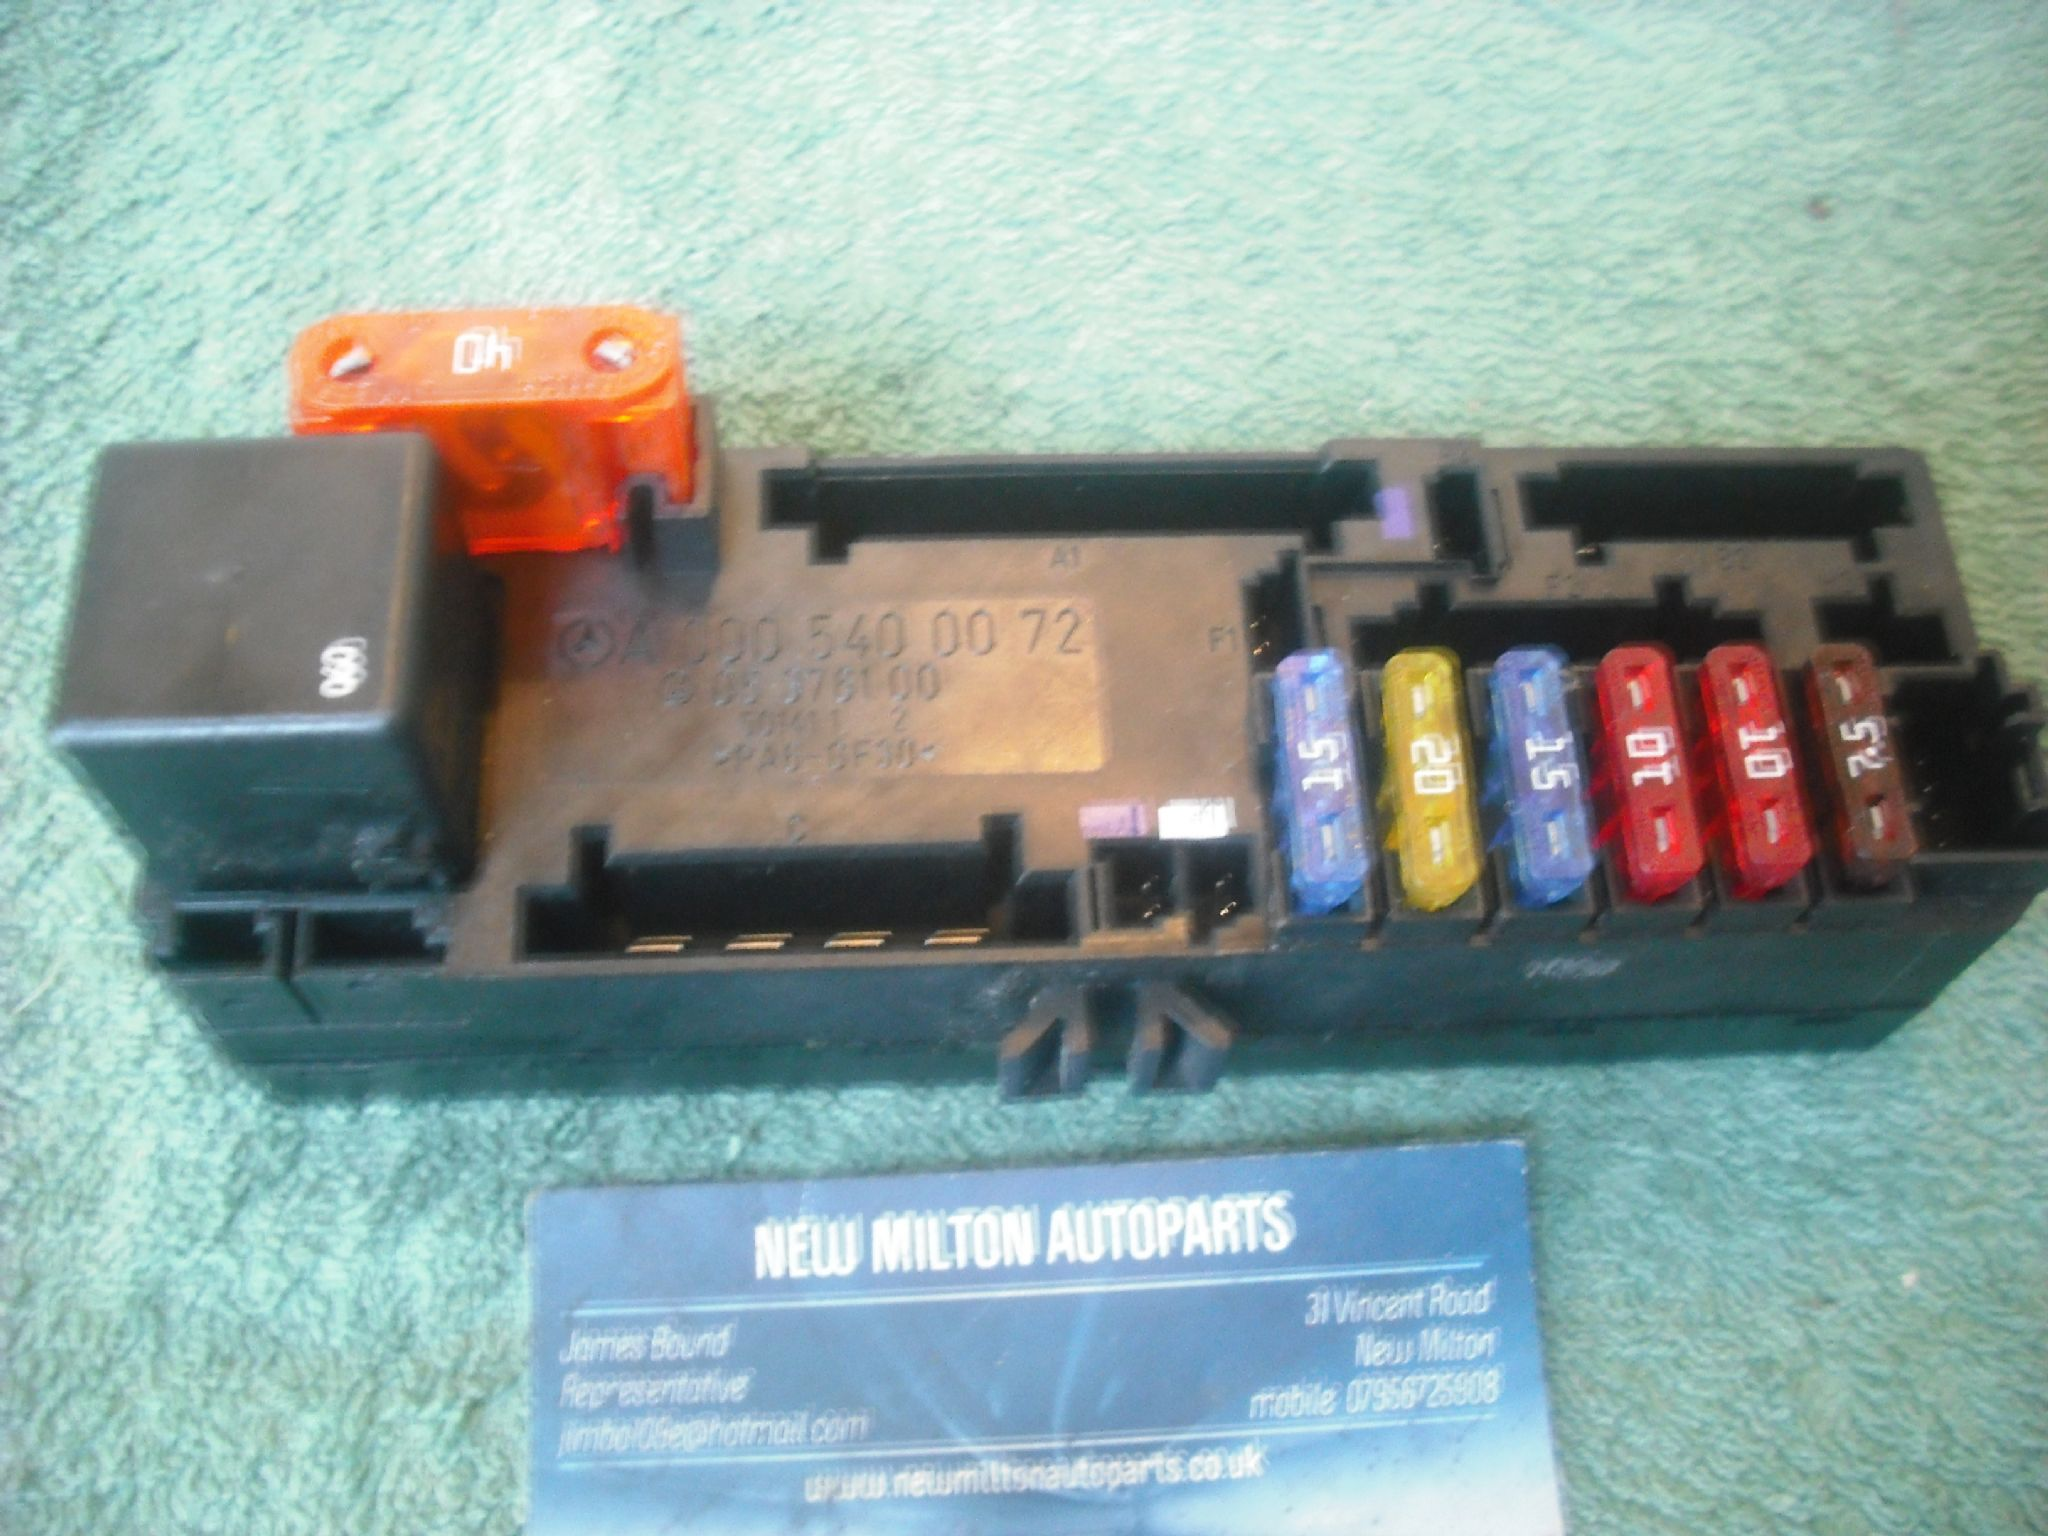 MERCEDES W202 C CLASS FUSE BOX OVERLOAD RELAY FUSE BOX MODULE A 000 540 03  72